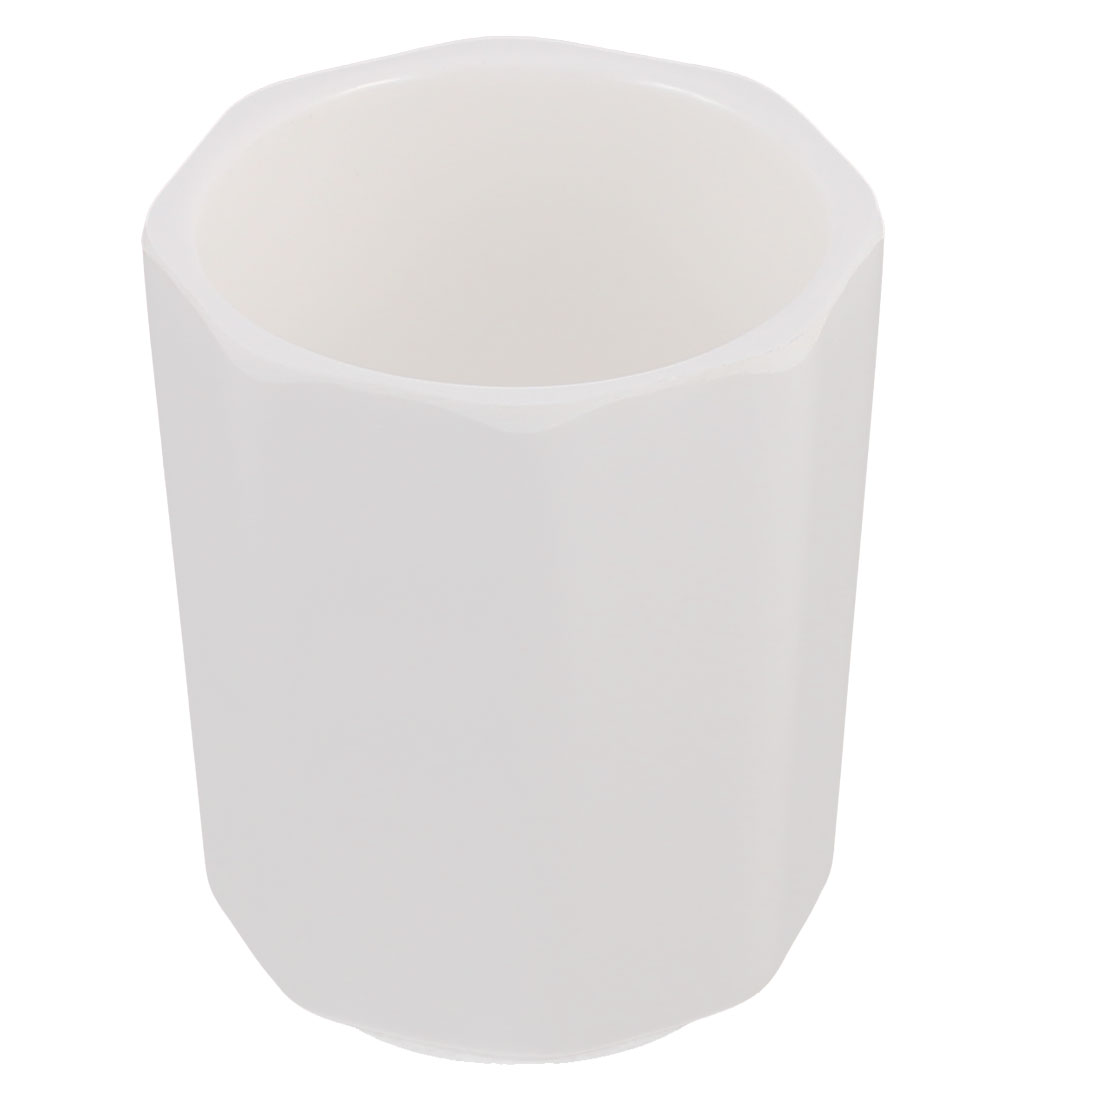 Restaurant Octagon Edge Water Beverage Drinking Cup White